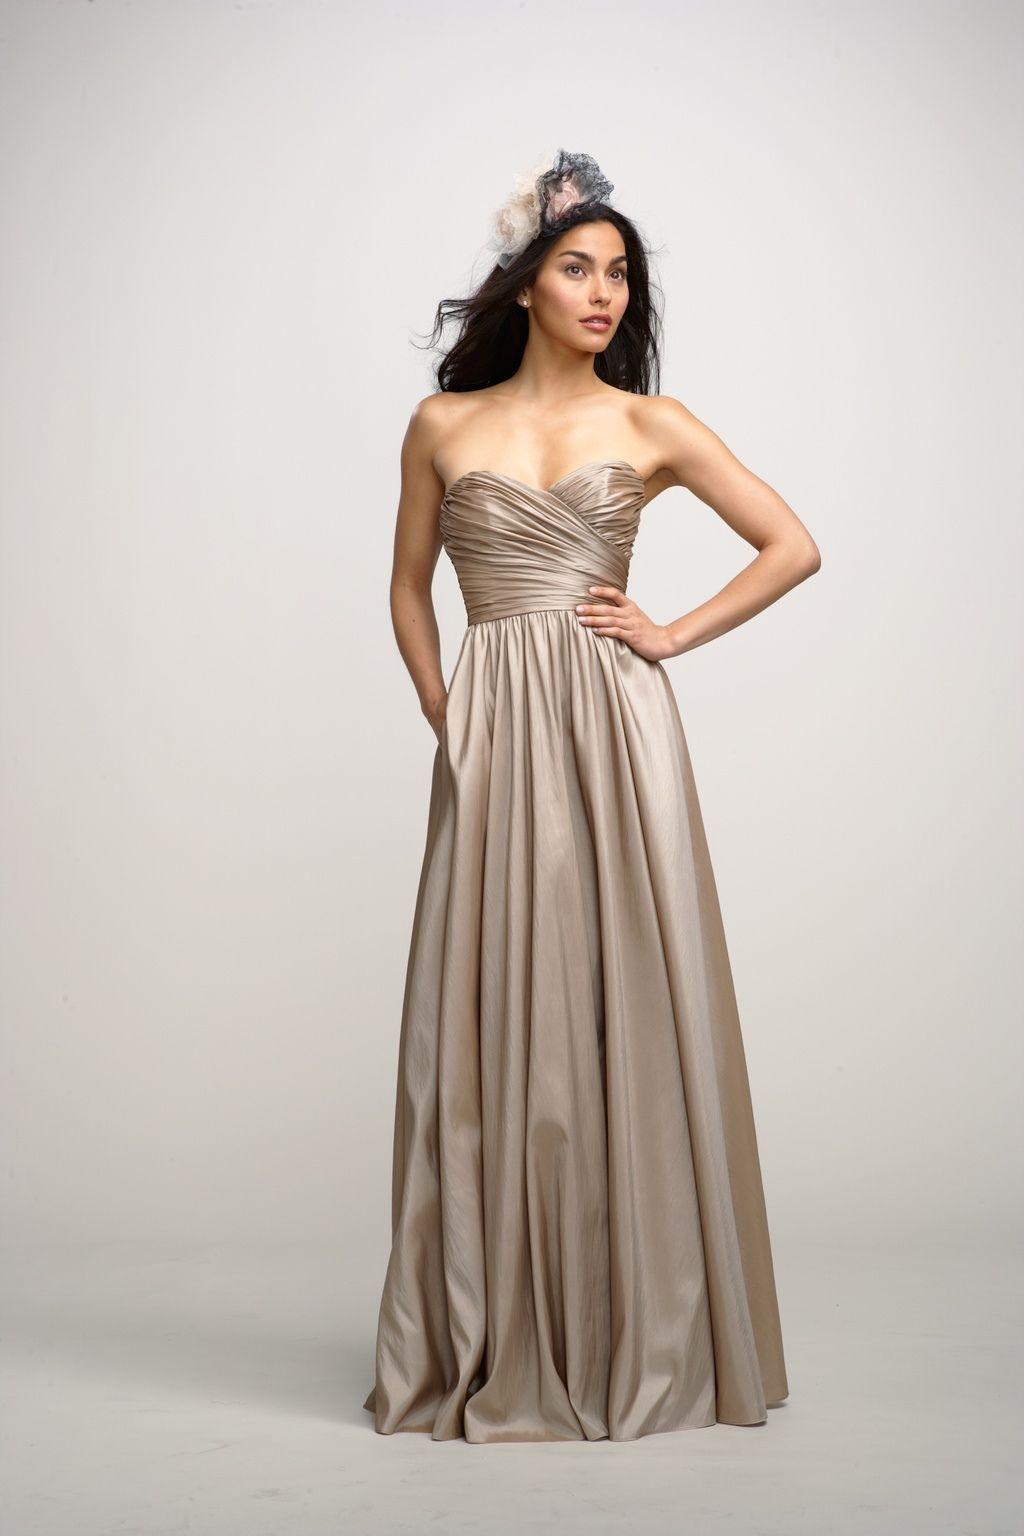 50+ Taupe Wedding Dress - Wedding Dresses for Plus Size Check more ...